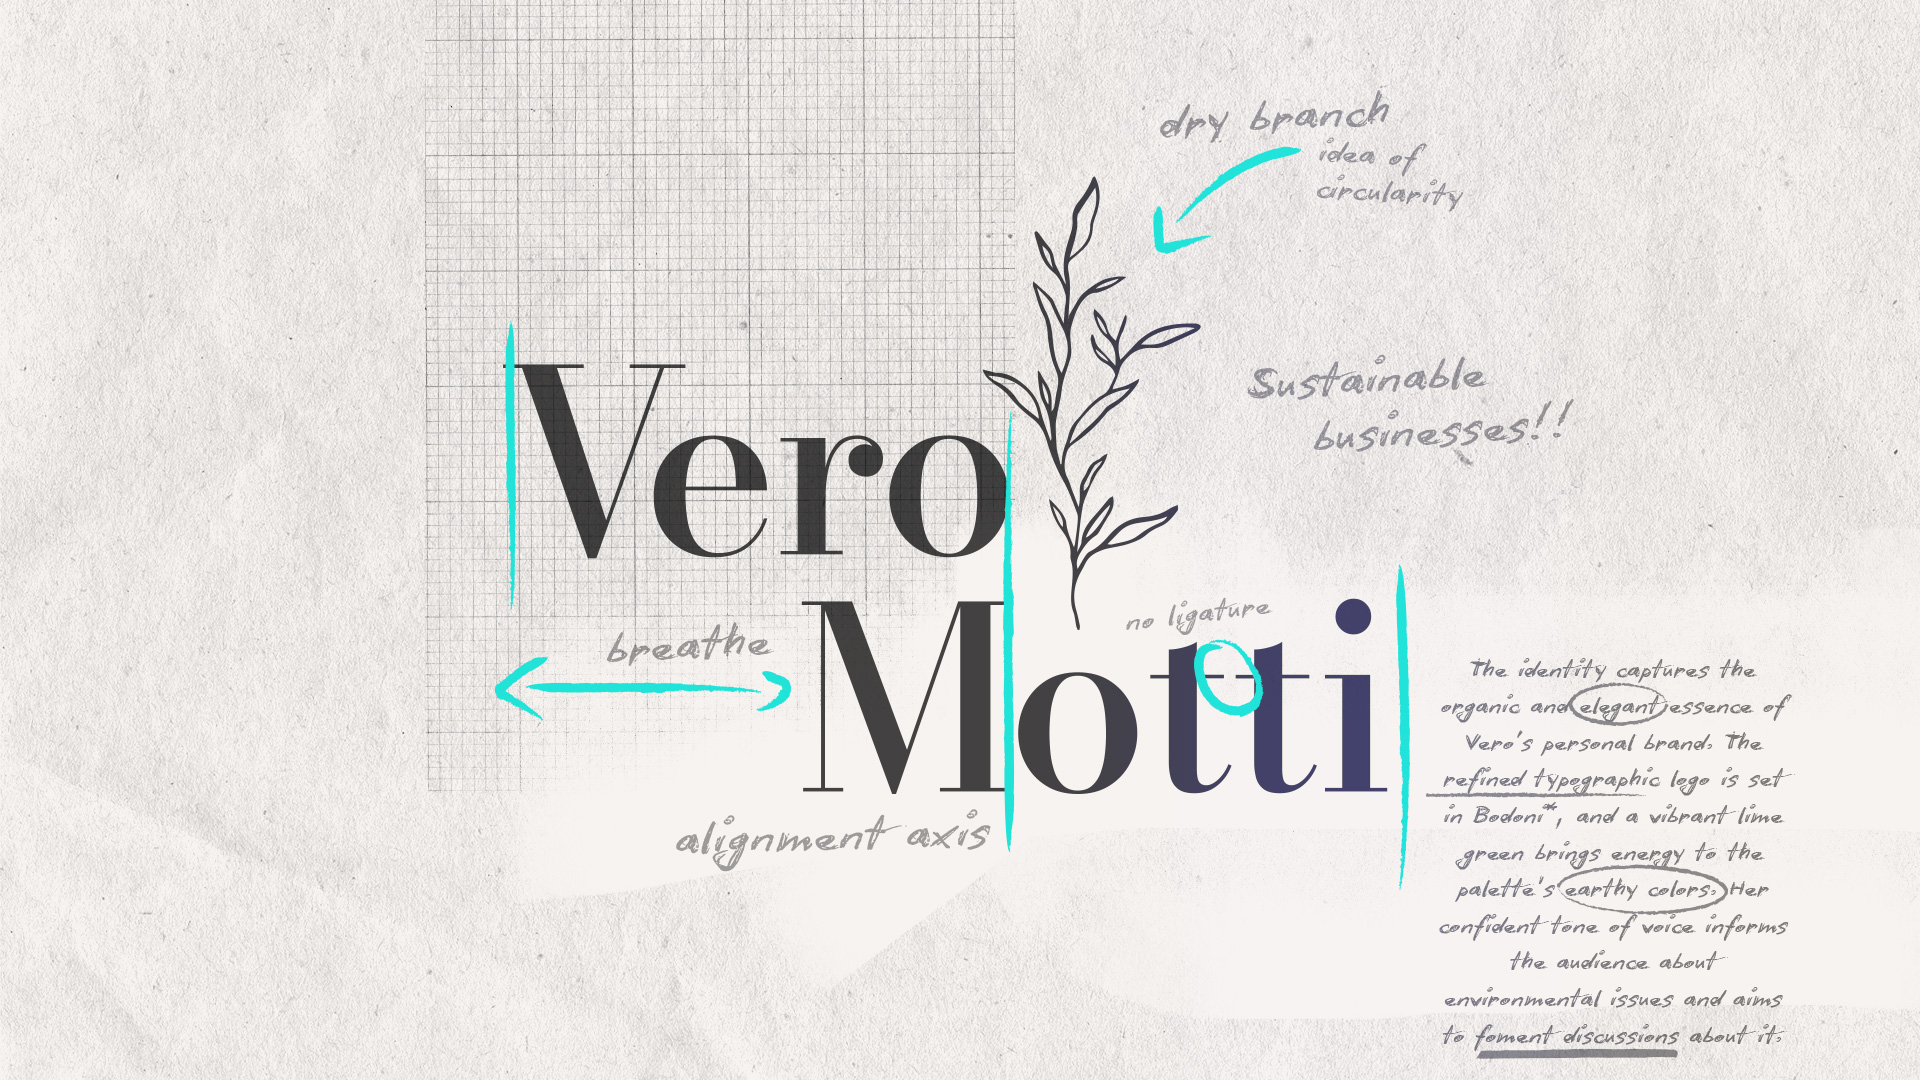 vero motti's logo and observations